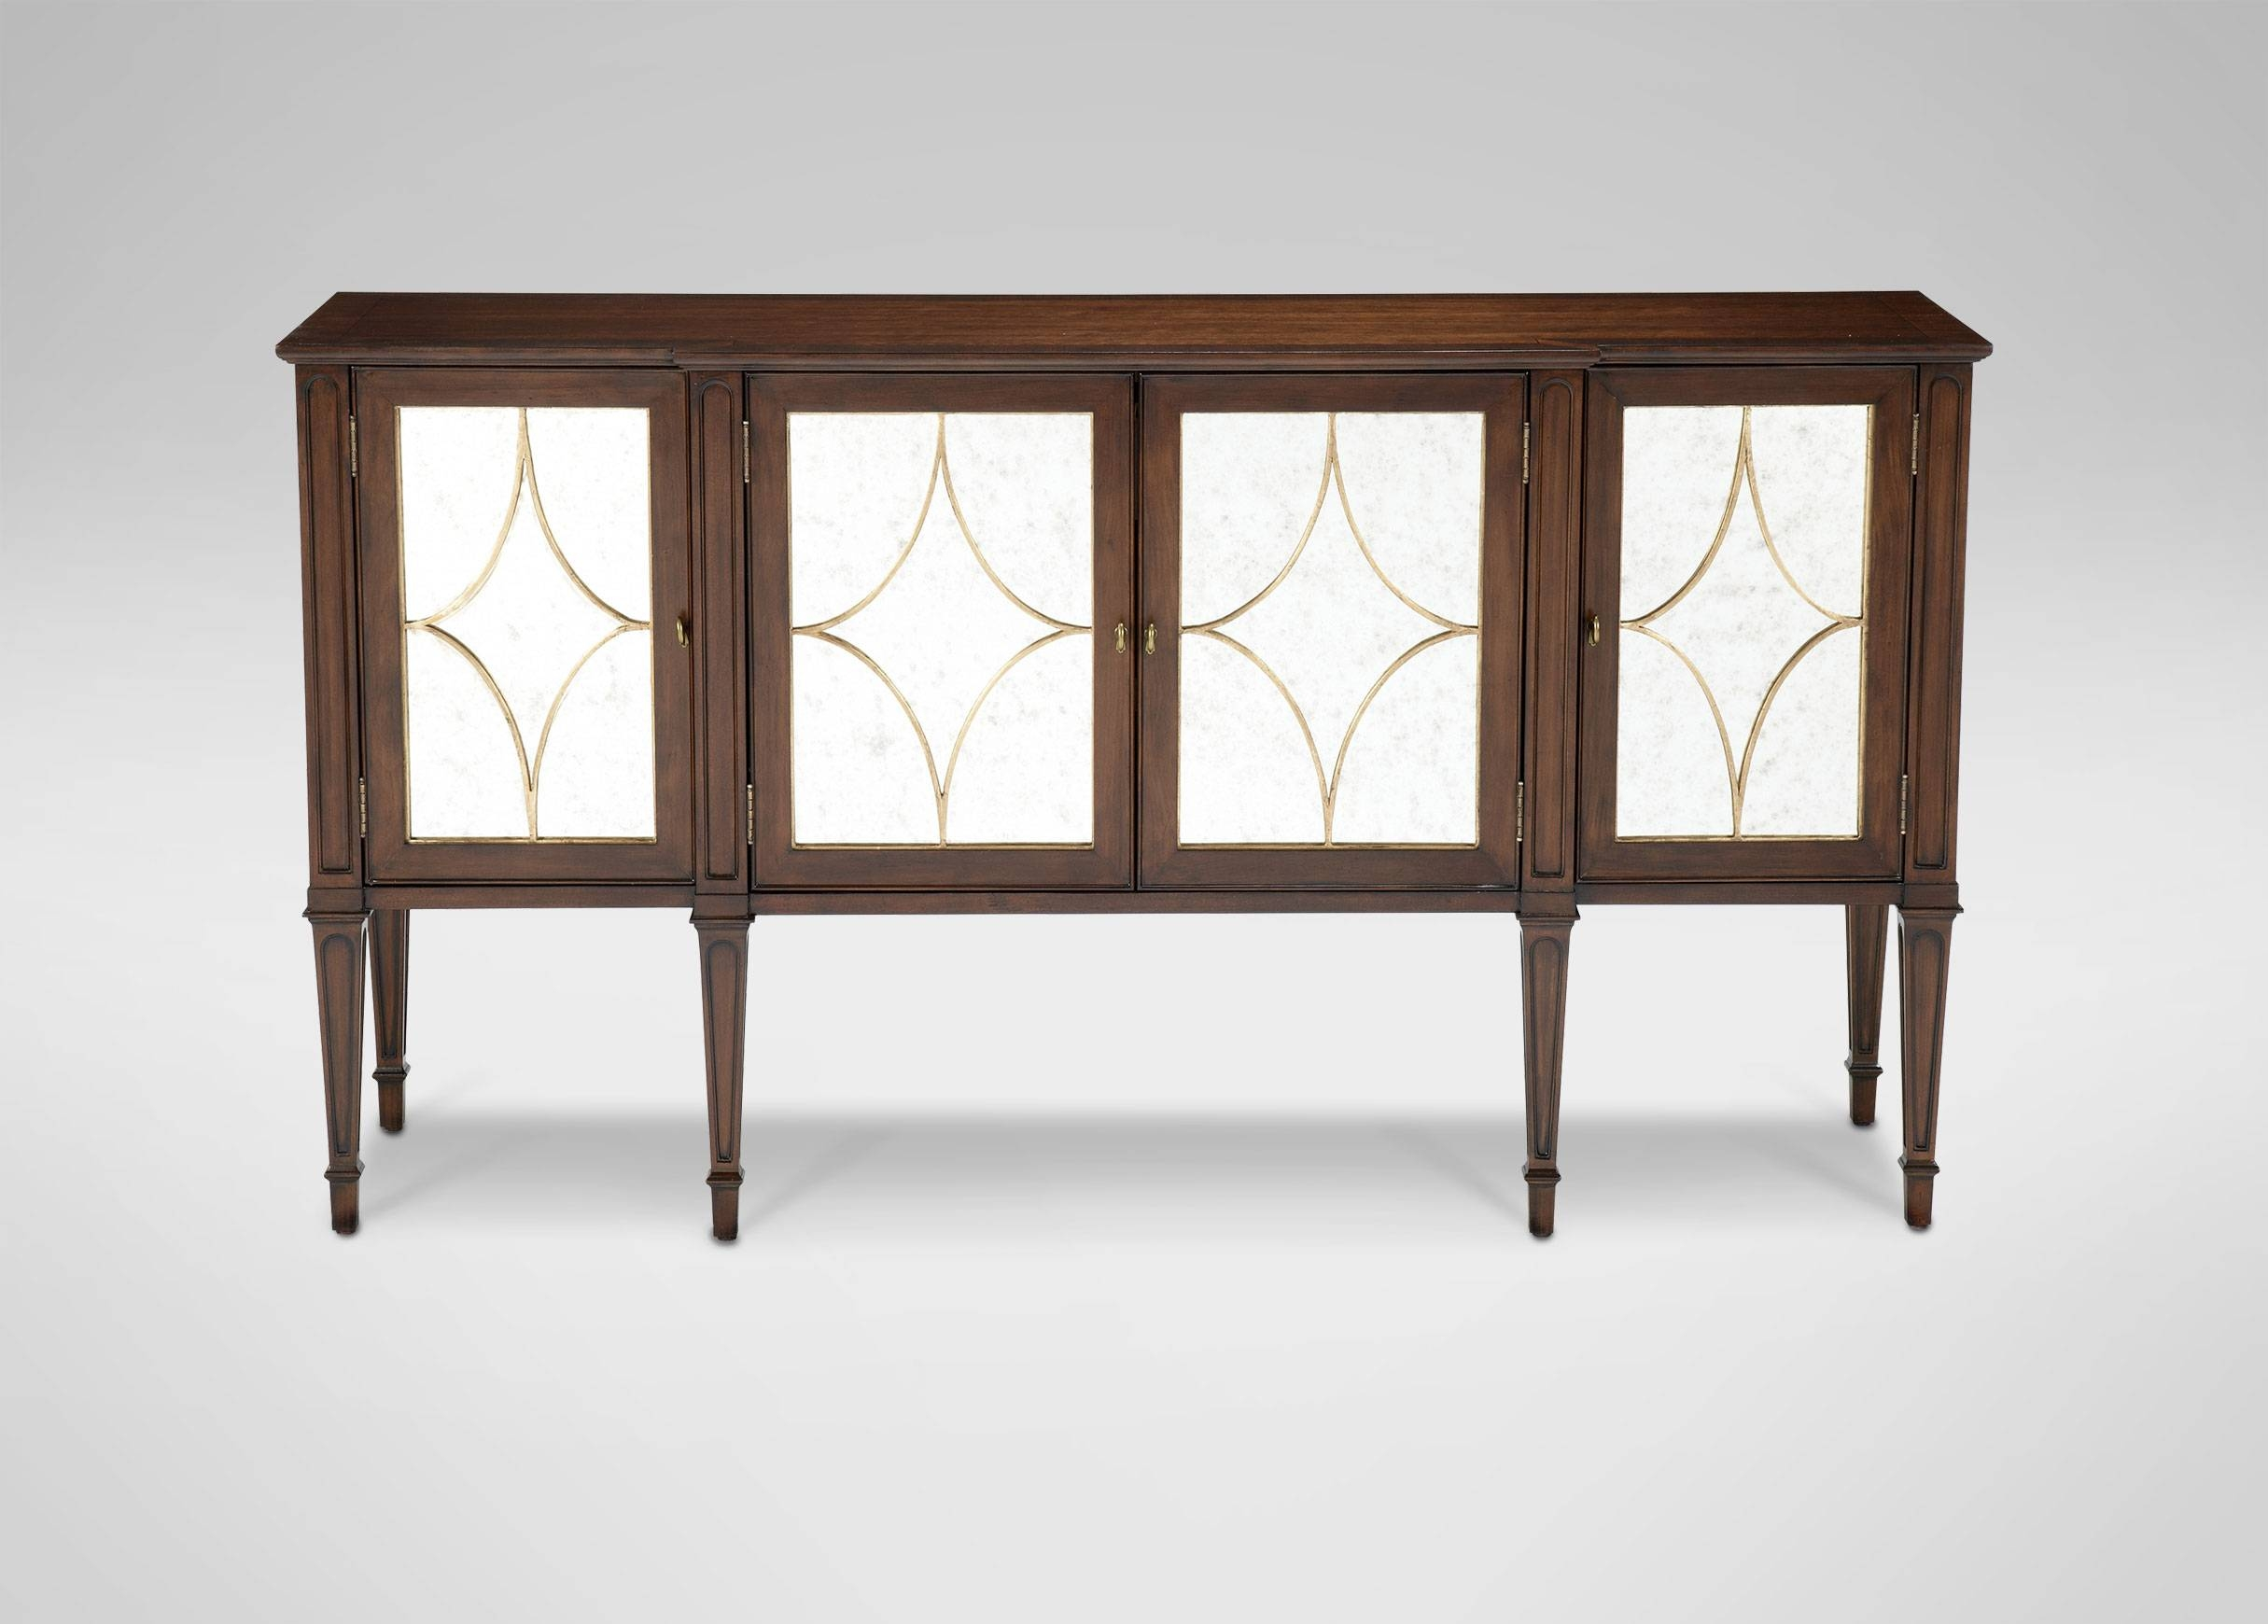 Norwich Sideboard | Buffets, Sideboards & Servers with regard to Ethan Allen Sideboards (Image 5 of 15)